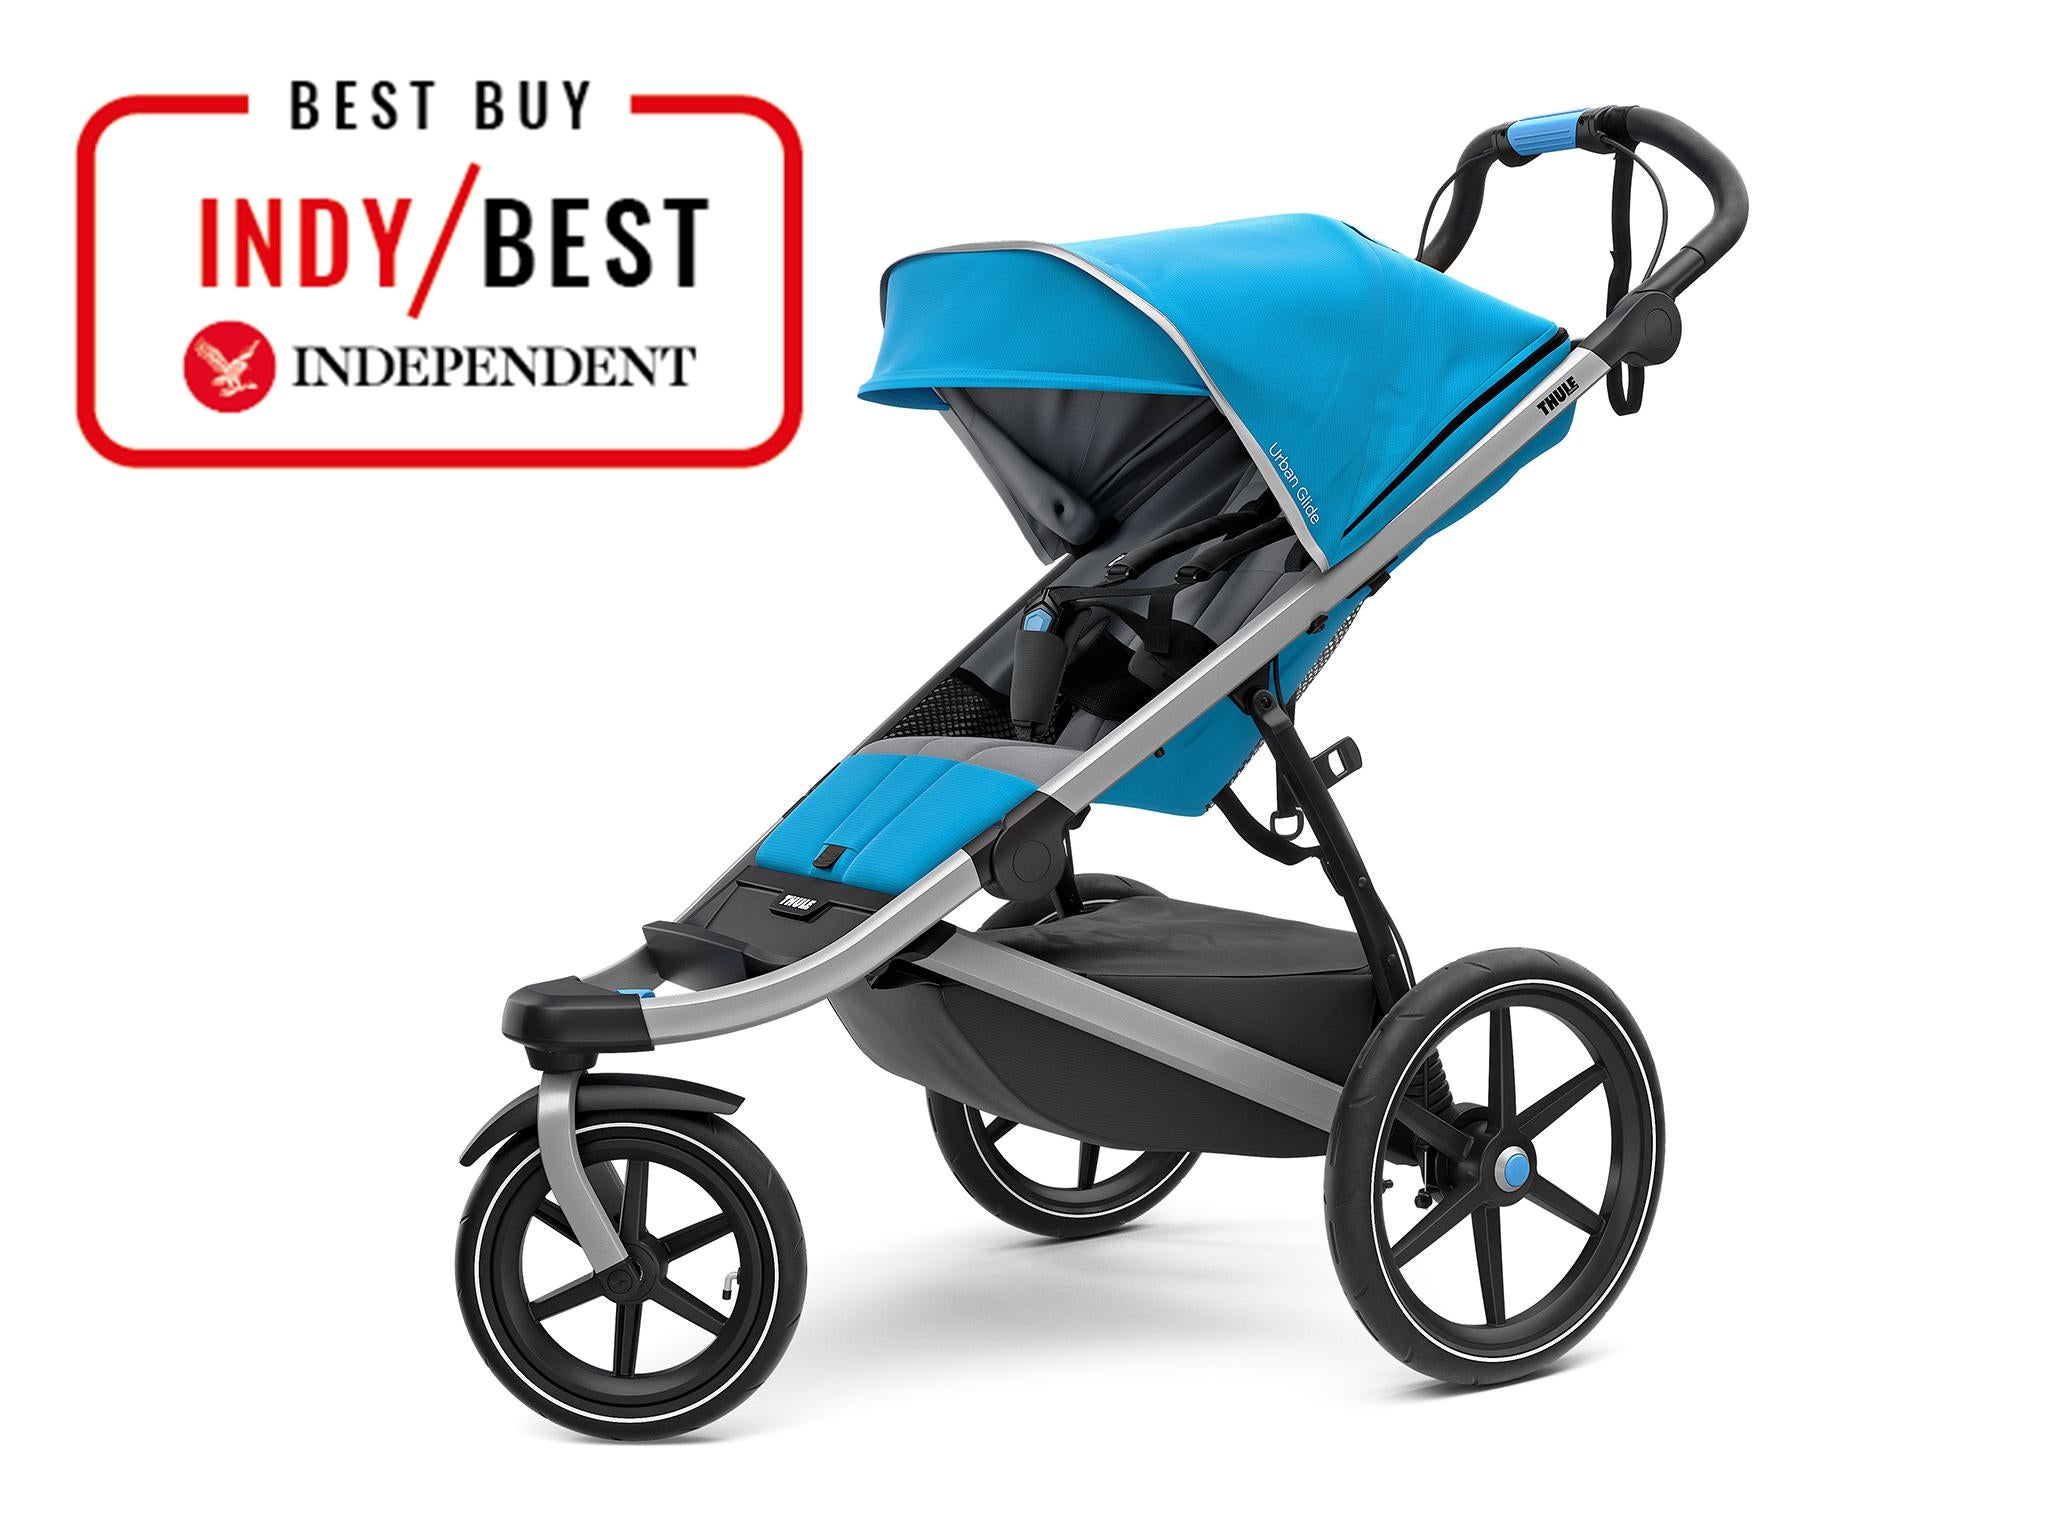 5 Best Jogging Strollers The Independent Stroller Creative Clasic This Stylish